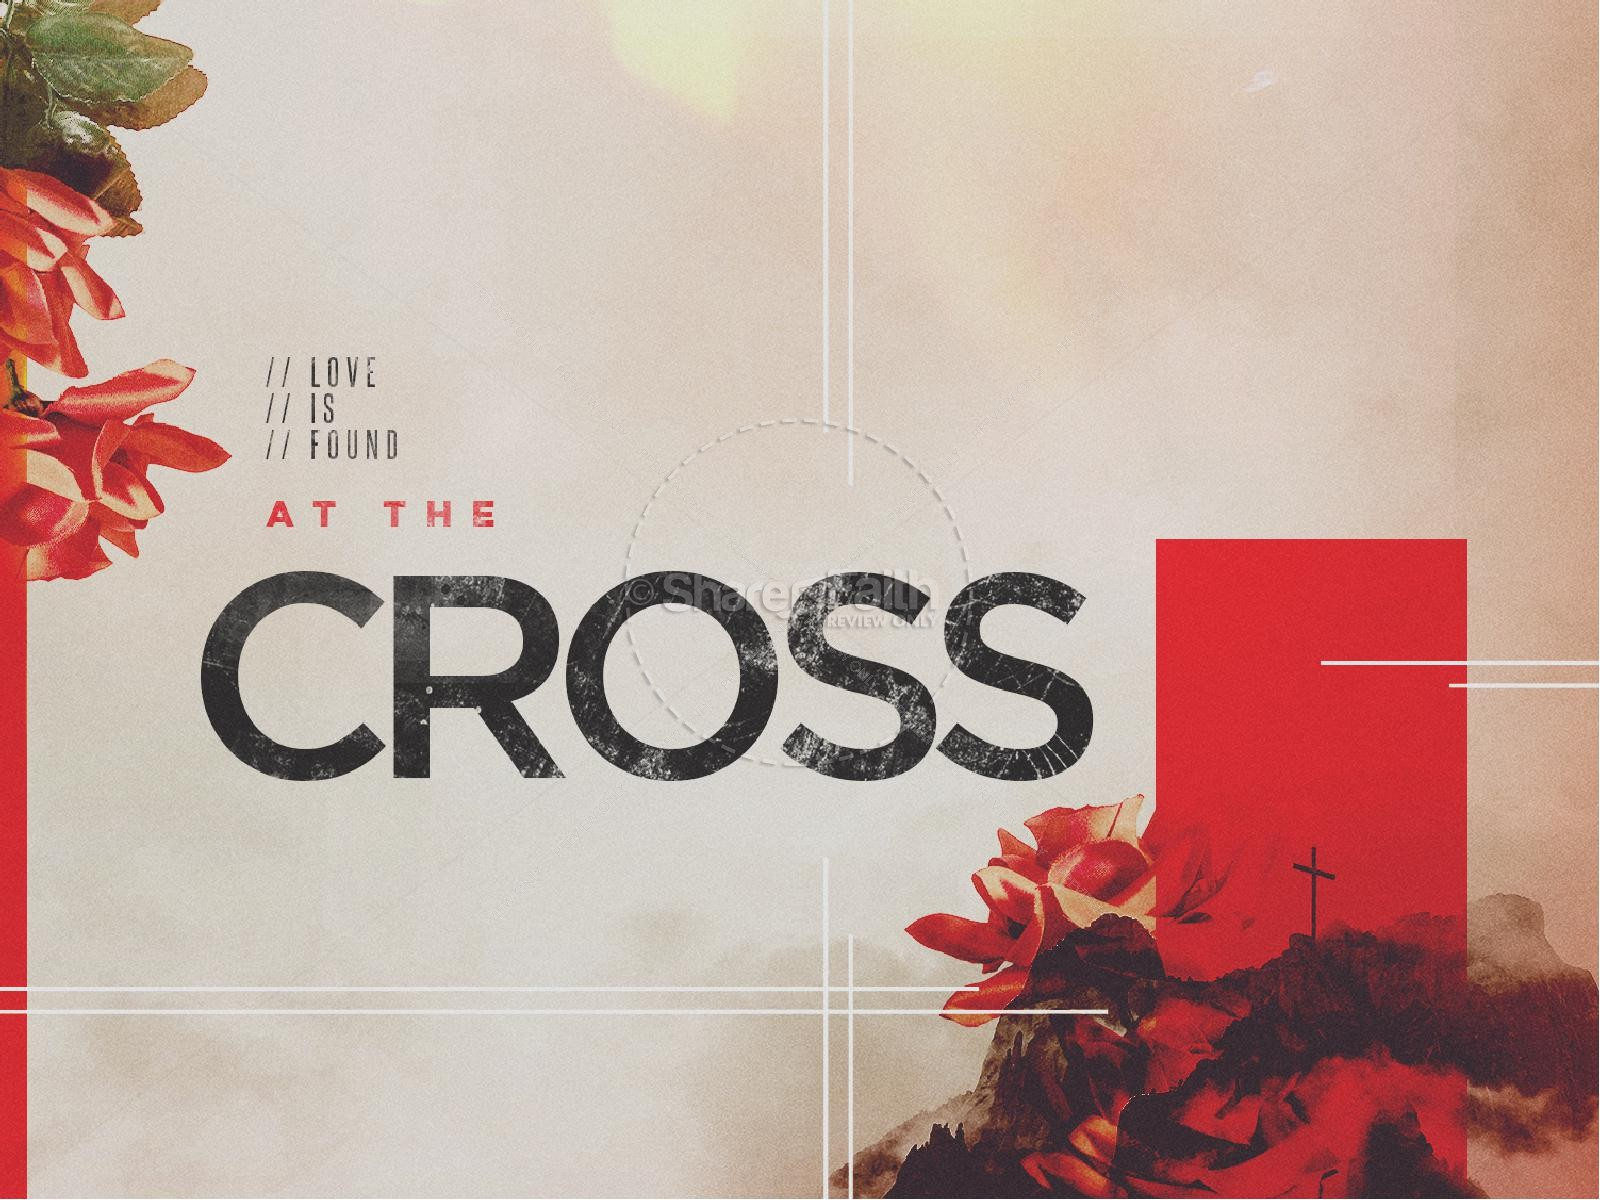 At The Cross Sermon Title Graphic